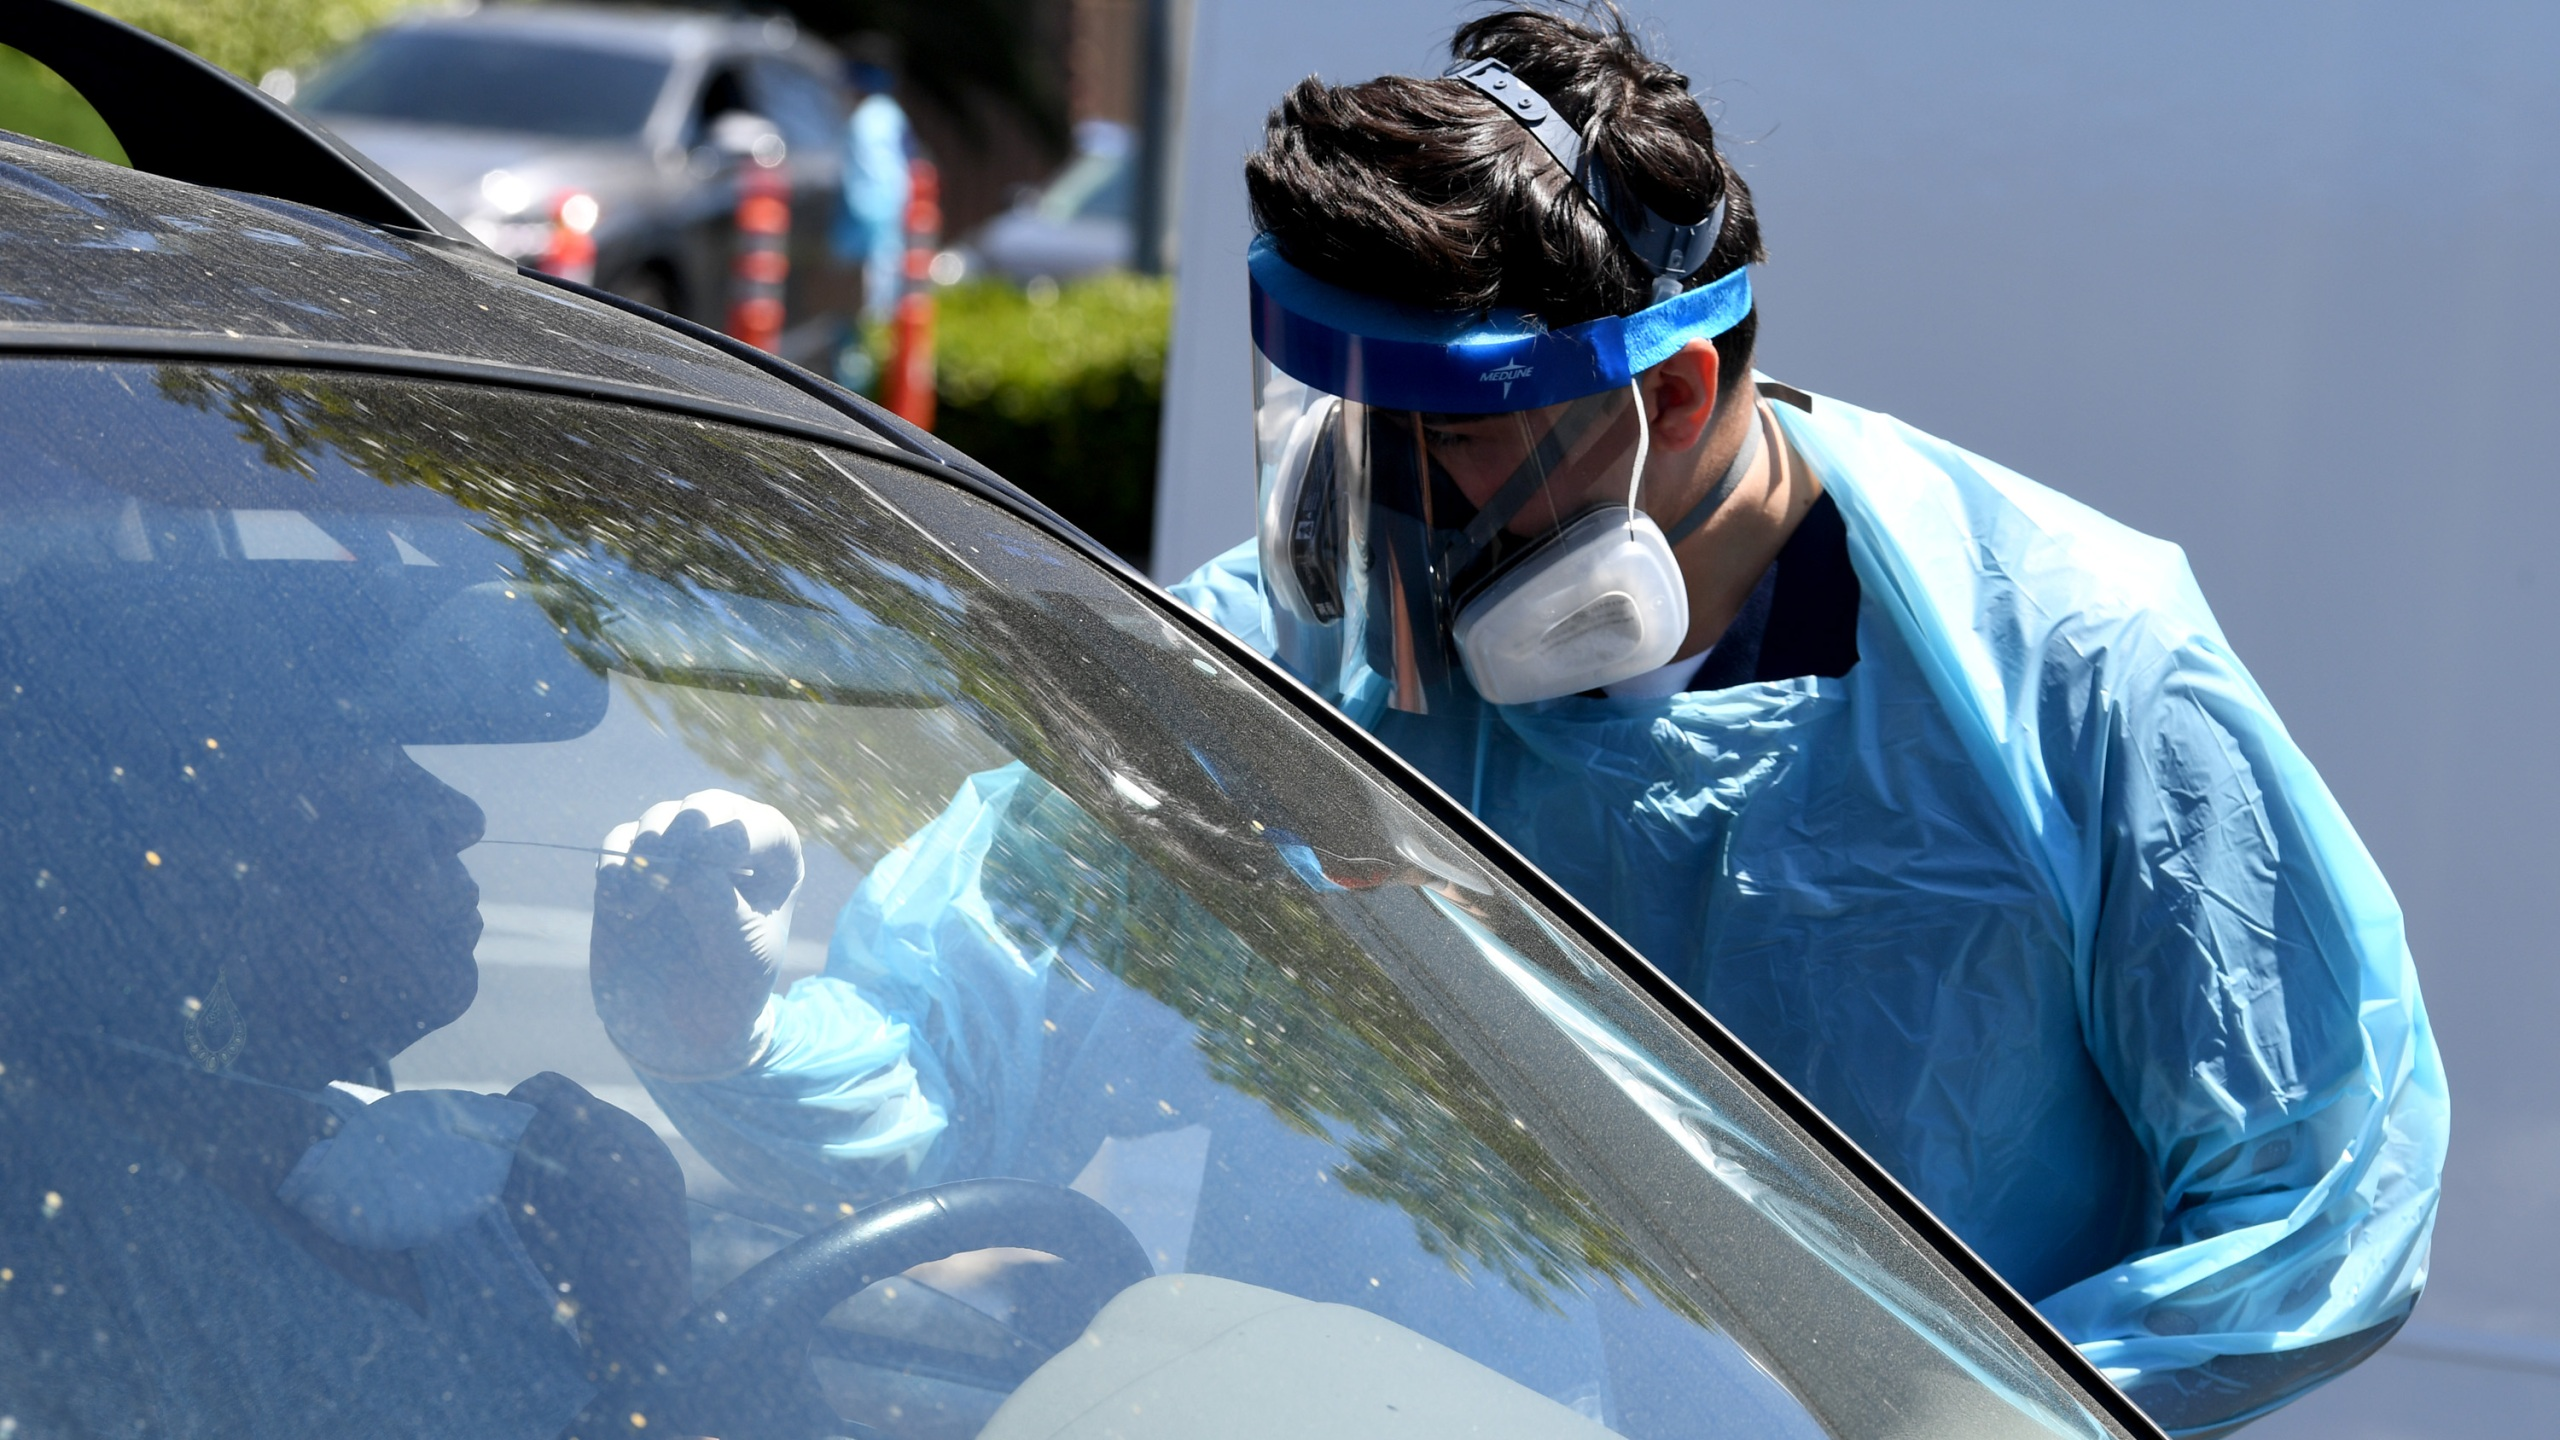 Workers wearing personal protective equipment perform drive-up COVID-19 testing at Mend Urgent Care testing site for the novel coronavirus at the Westfield Culver City on April 24, 2020, in Culver City. A nasopharyngeal swab test kit is used at this COVID-19 testing center to determine the viral load and virus count of a patient. (Kevin Winter / Getty Images)